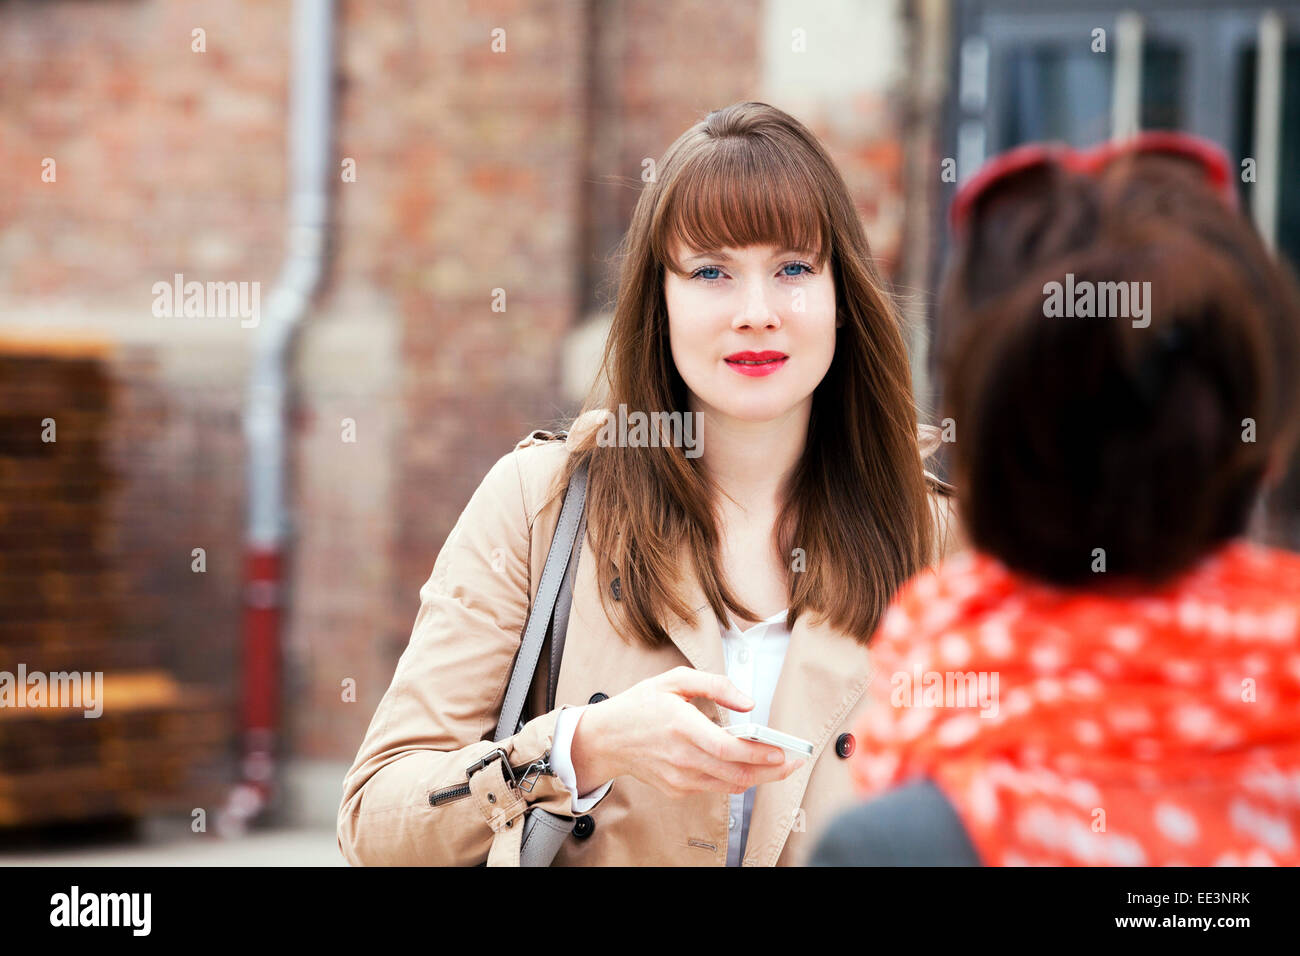 Young woman text messaging outdoors, Munich, Bavaria, Germany - Stock Image